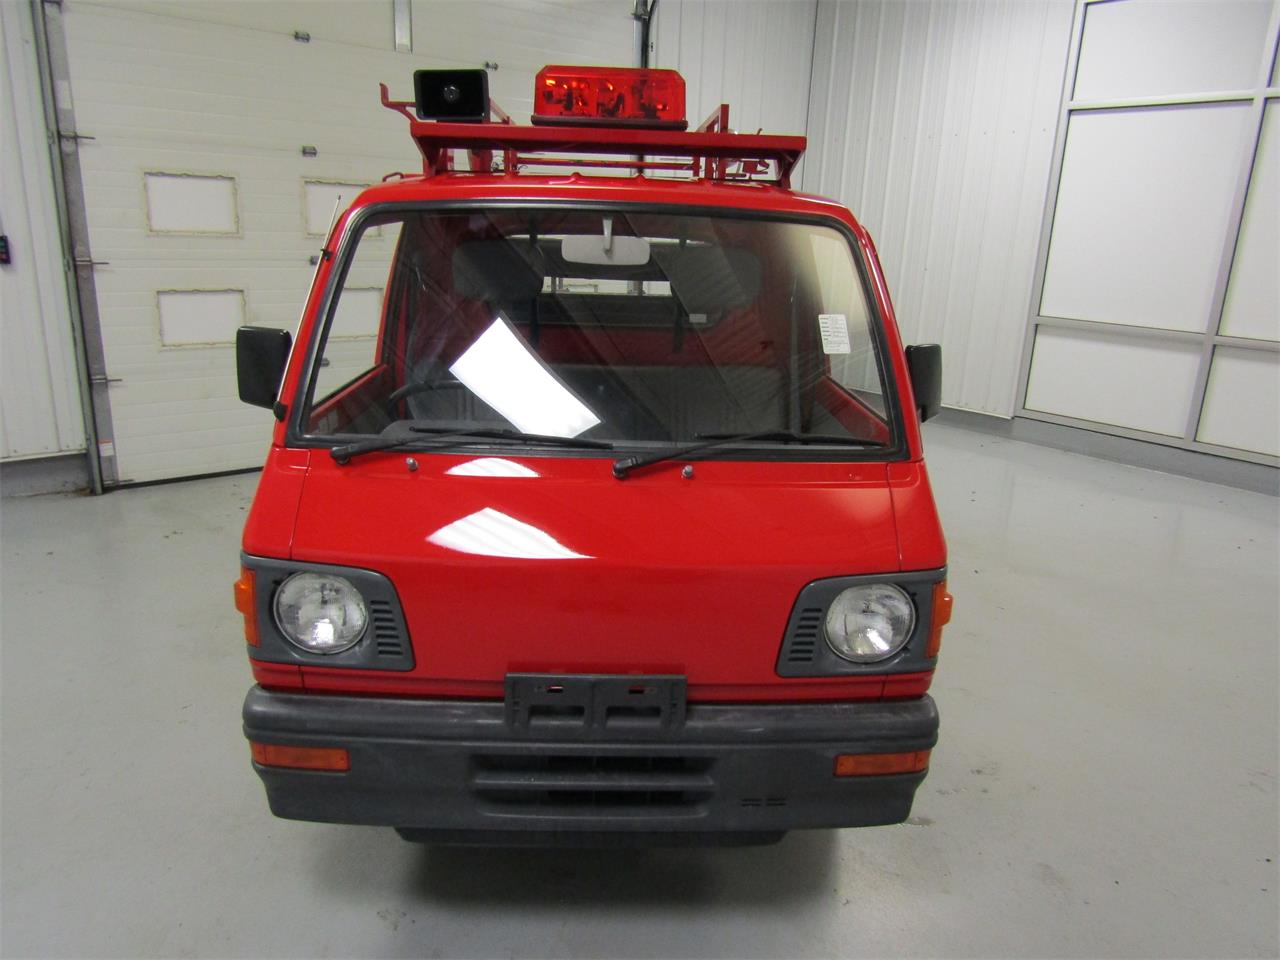 Large Picture of '89 Subaru Sambar located in Christiansburg Virginia - $9,999.00 Offered by Duncan Imports & Classic Cars - JM3W